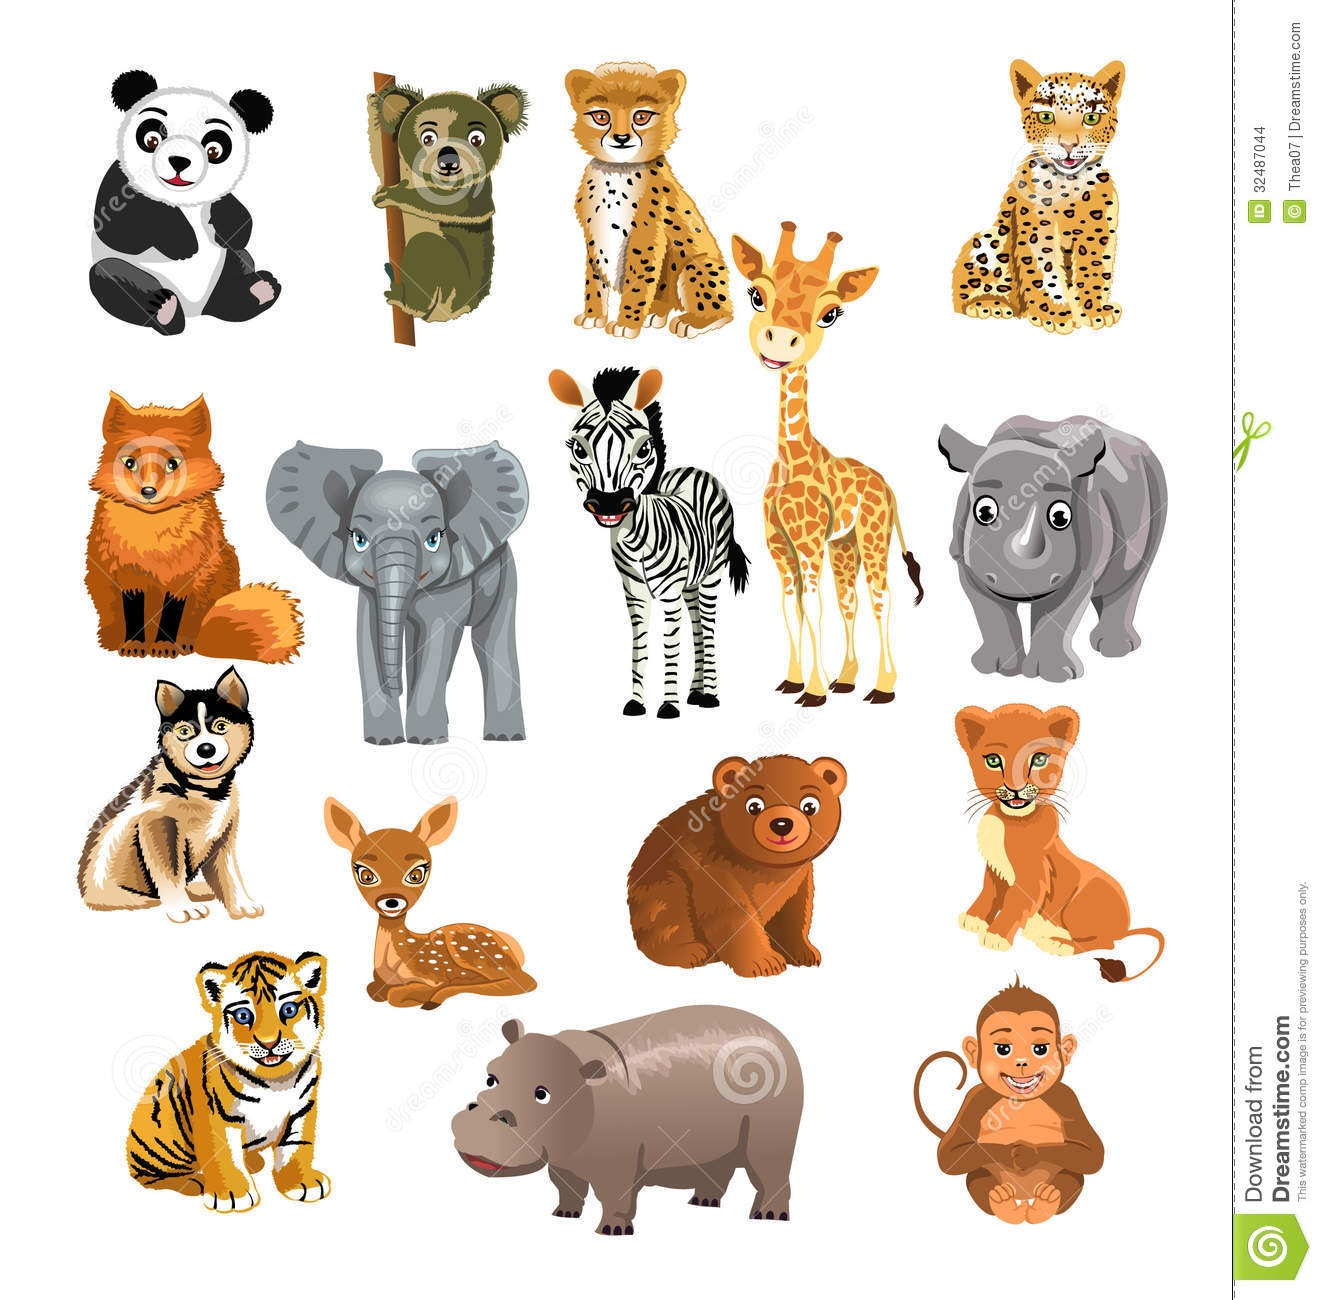 Free clipart of zoo animals .